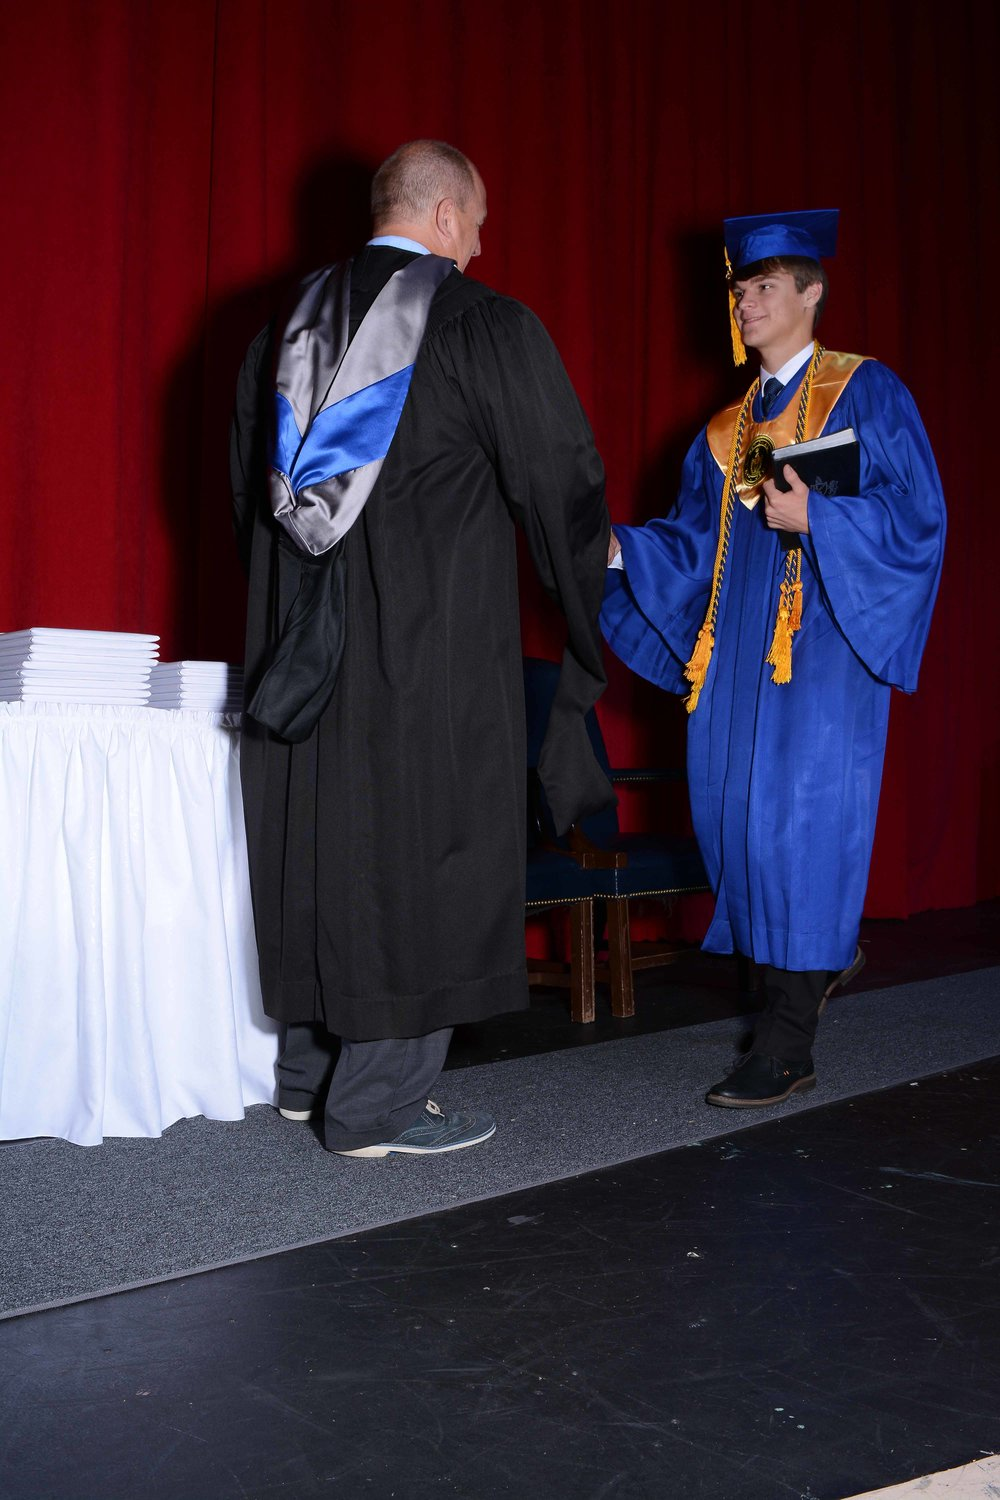 May14 Commencement112.jpg